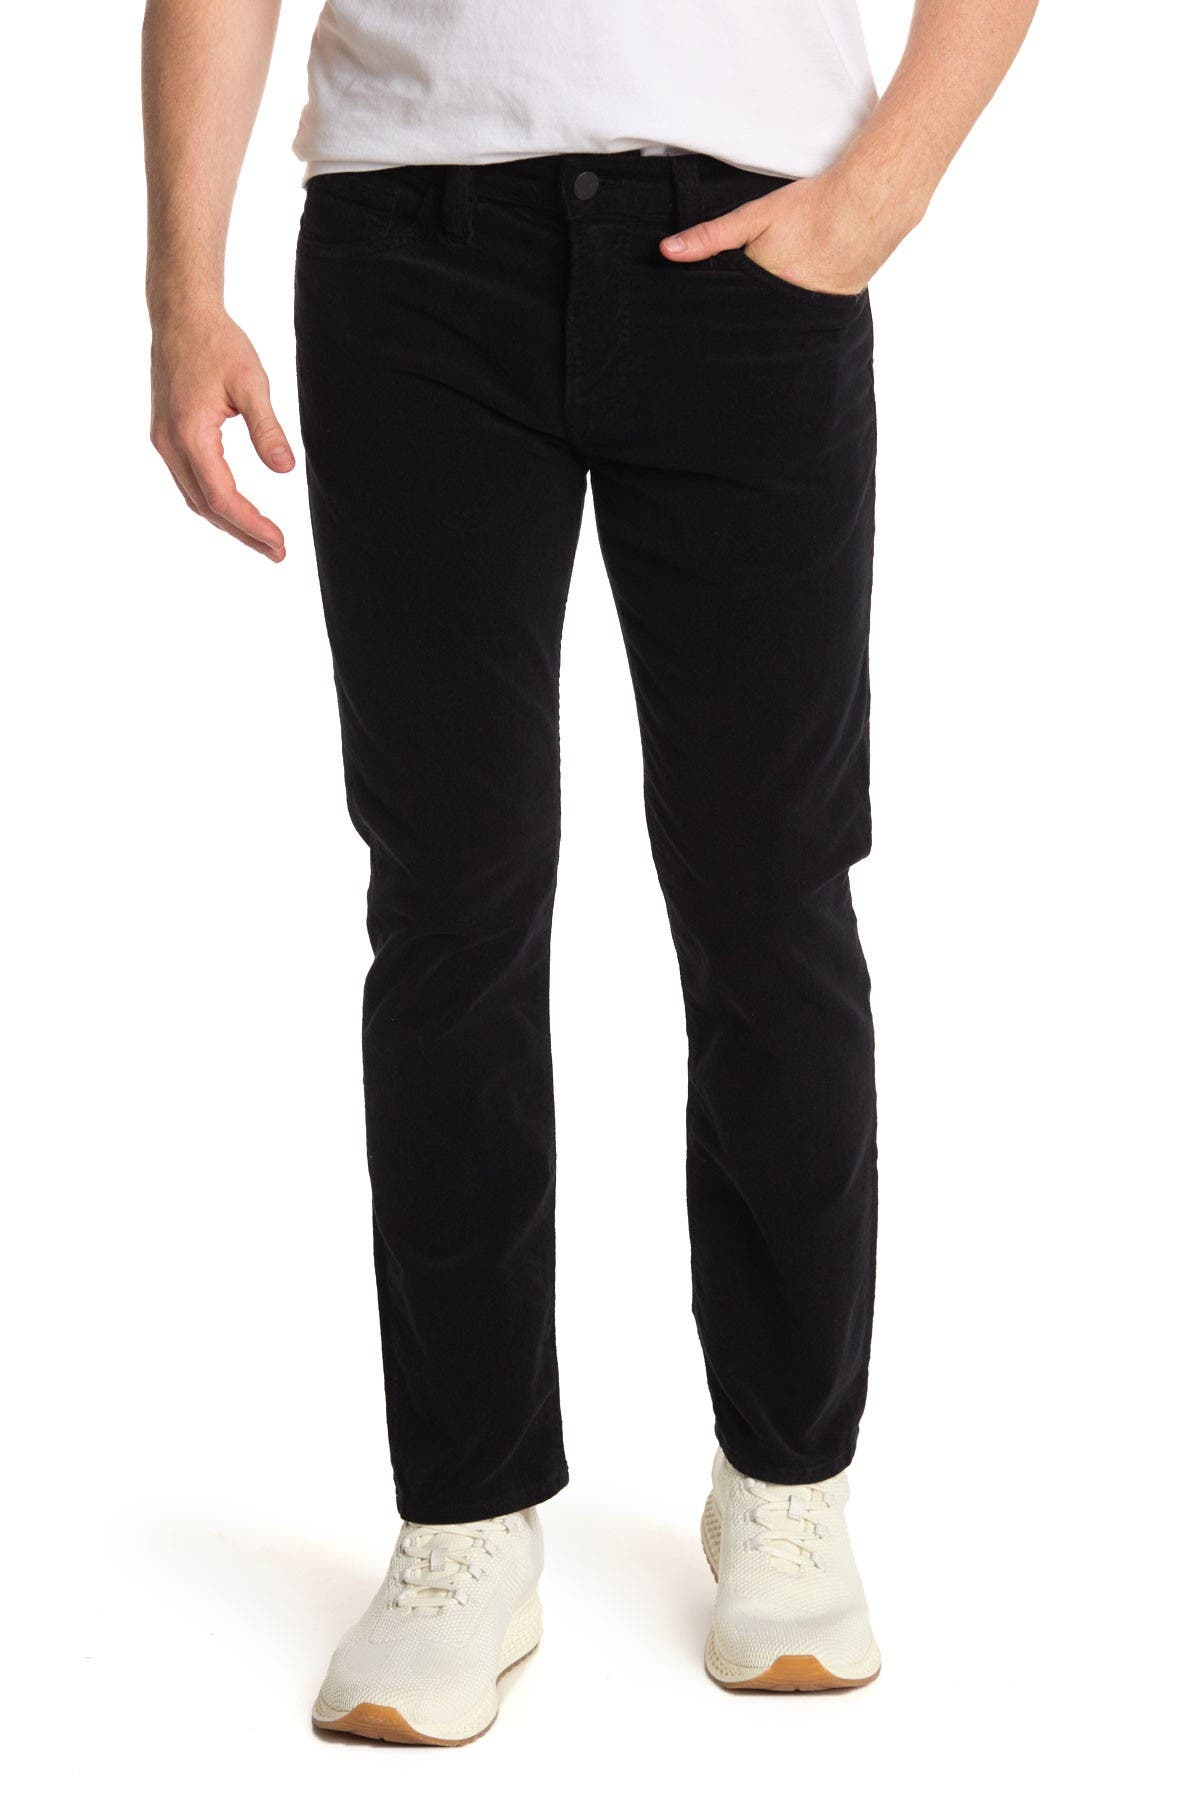 """Image of 34 Heritage Courage Straight Leg Jeans - 30-34"""" Inseam"""